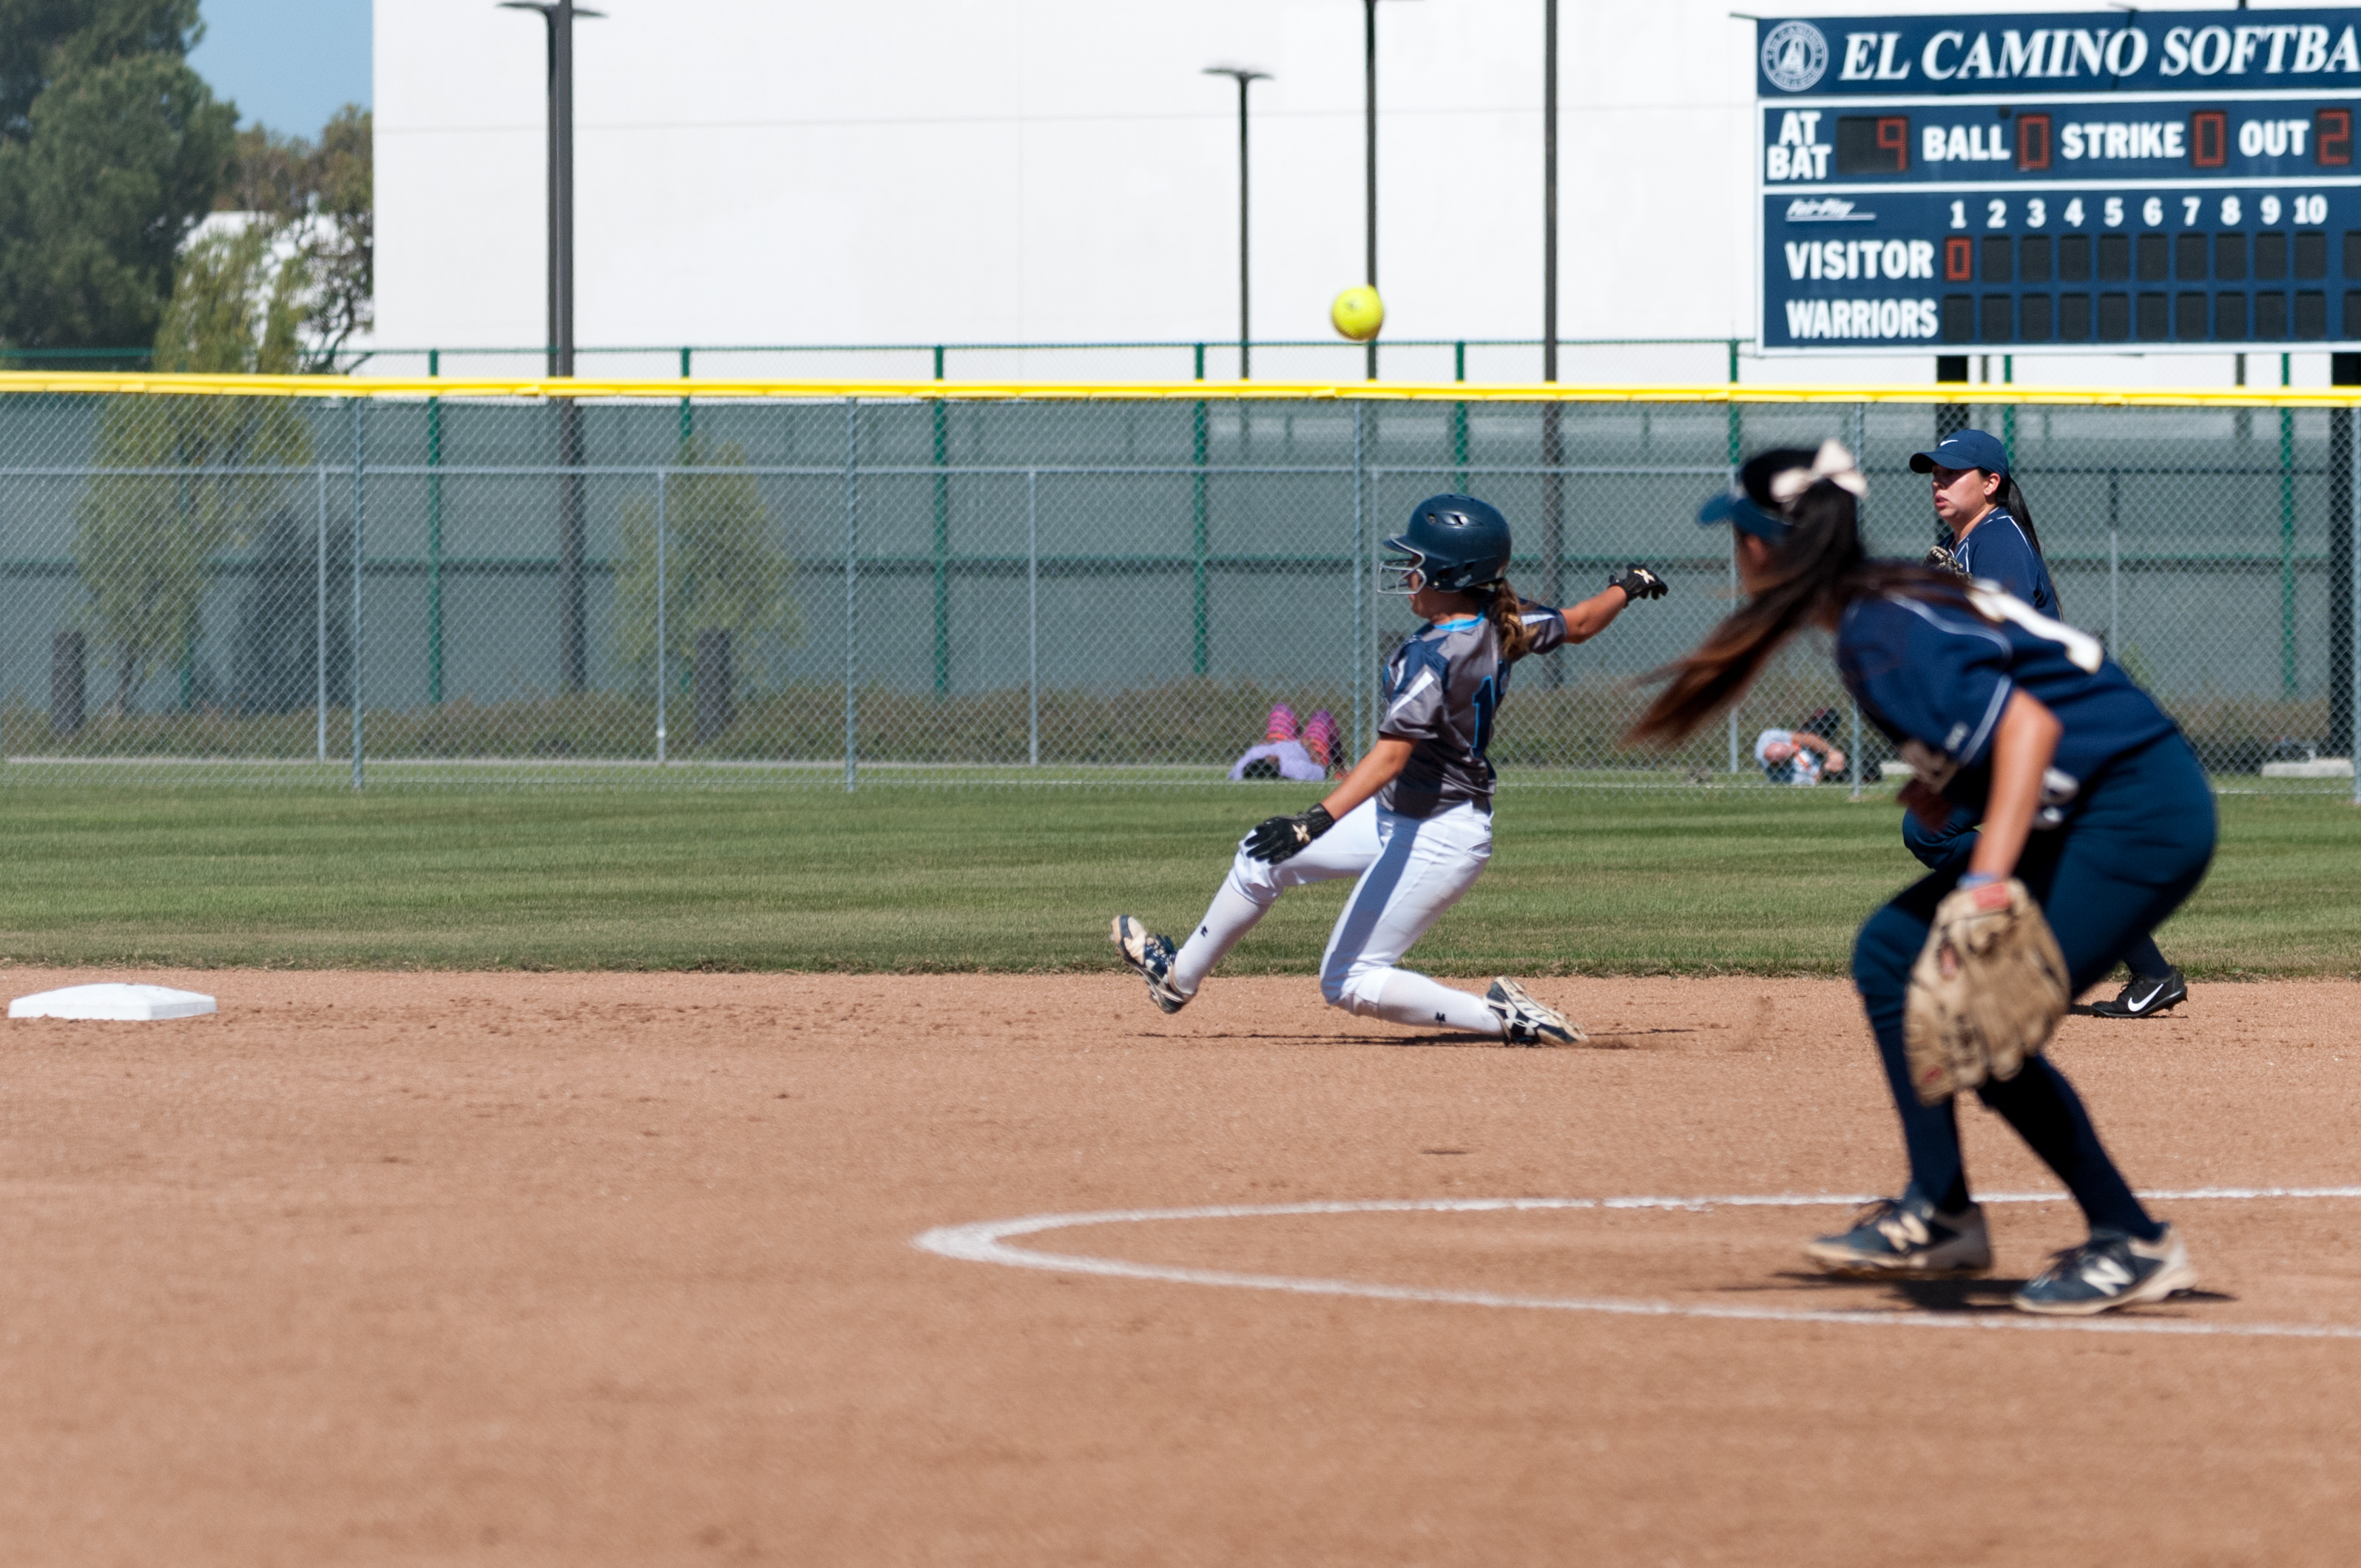 Freshman Ashley Machado (No. 15 Catcher/Outfield) slides into second base for the Warriors against L.A. Harbor College on Tuesday, March 28 at El Camino College. Photo credit: Osvaldo Deras